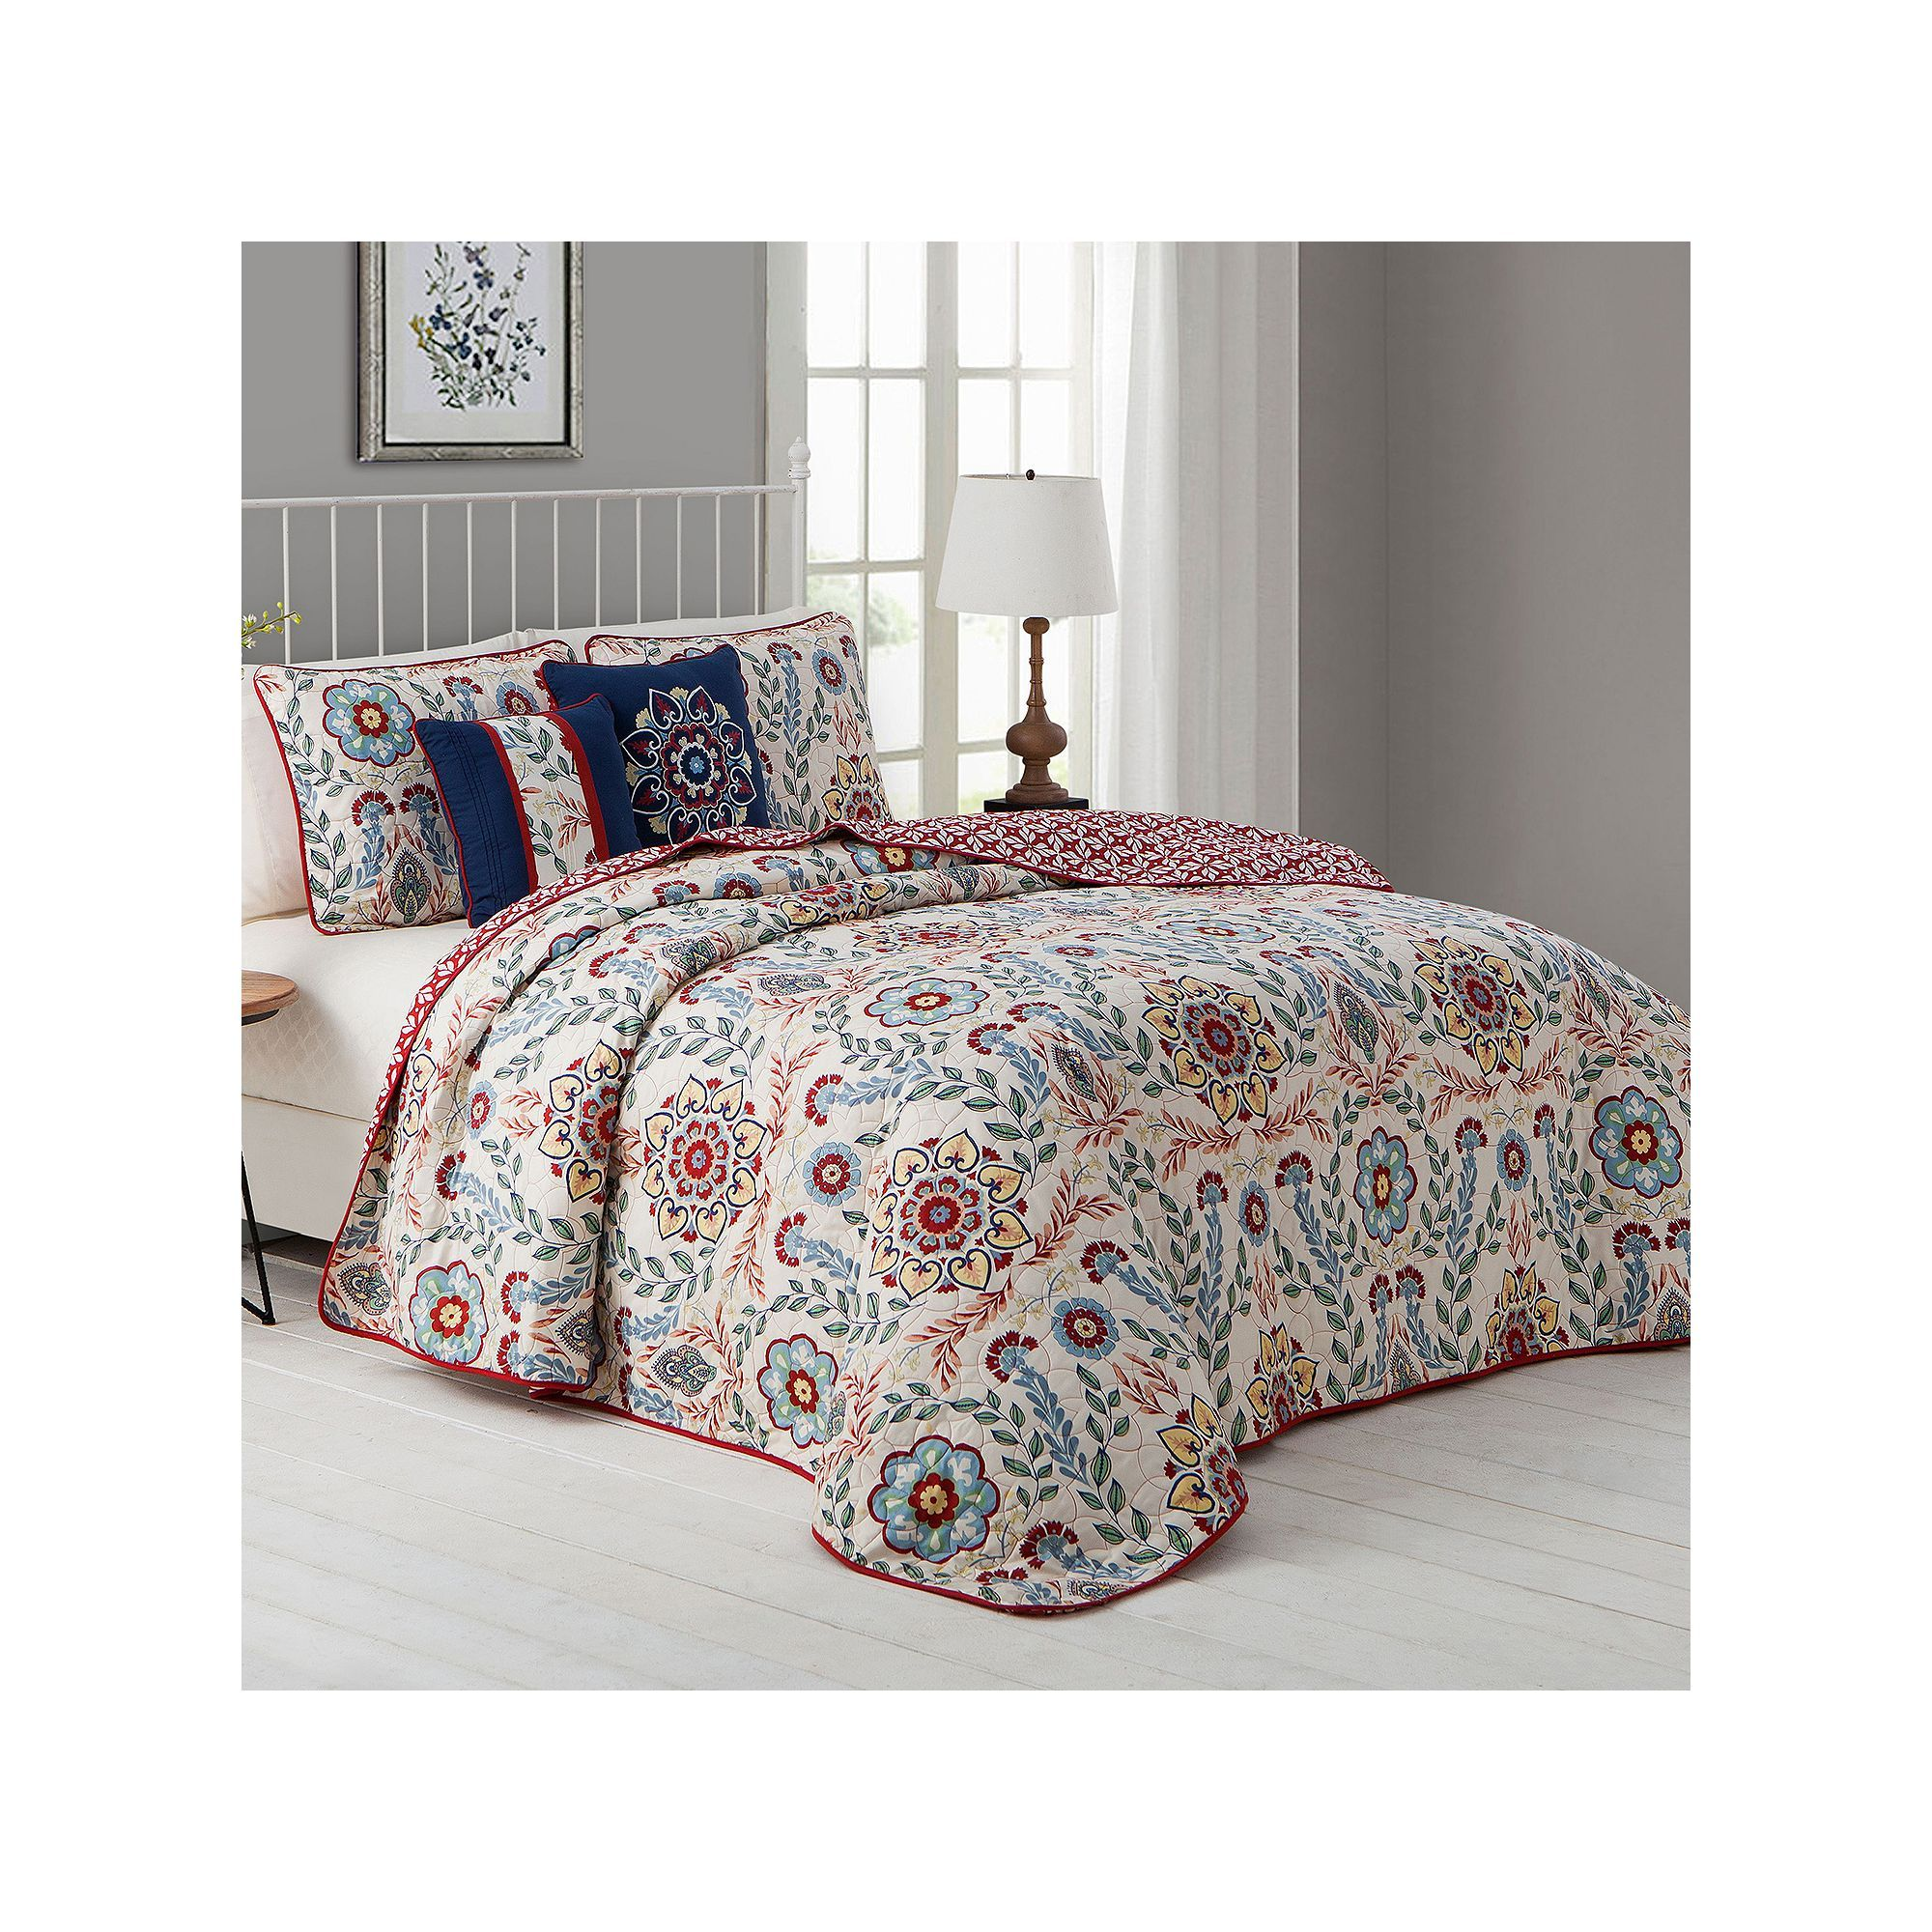 Quilt Sets Avondale Manor 5 Piece Valena Quilt Set Products Quilt Sets